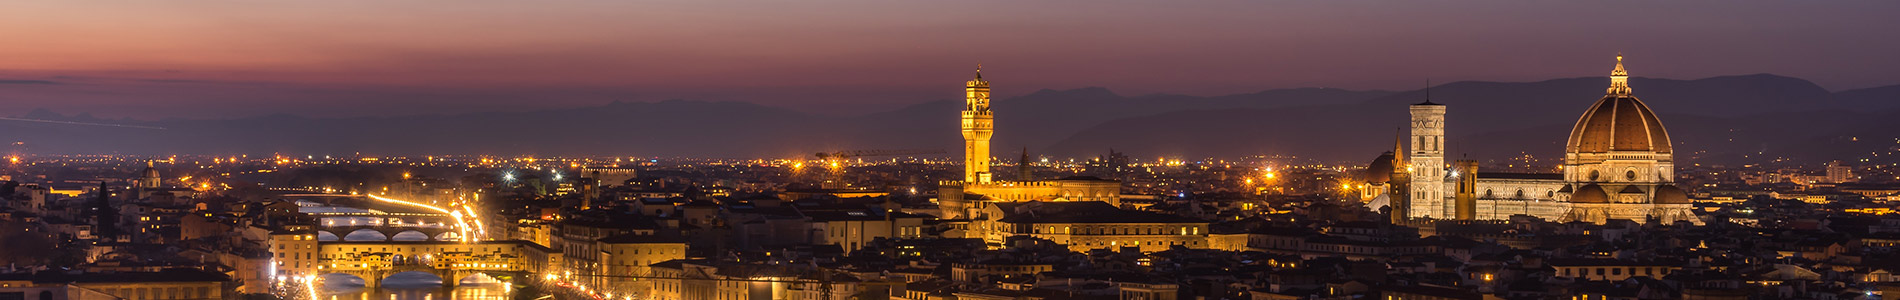 voyage-a-florence-1